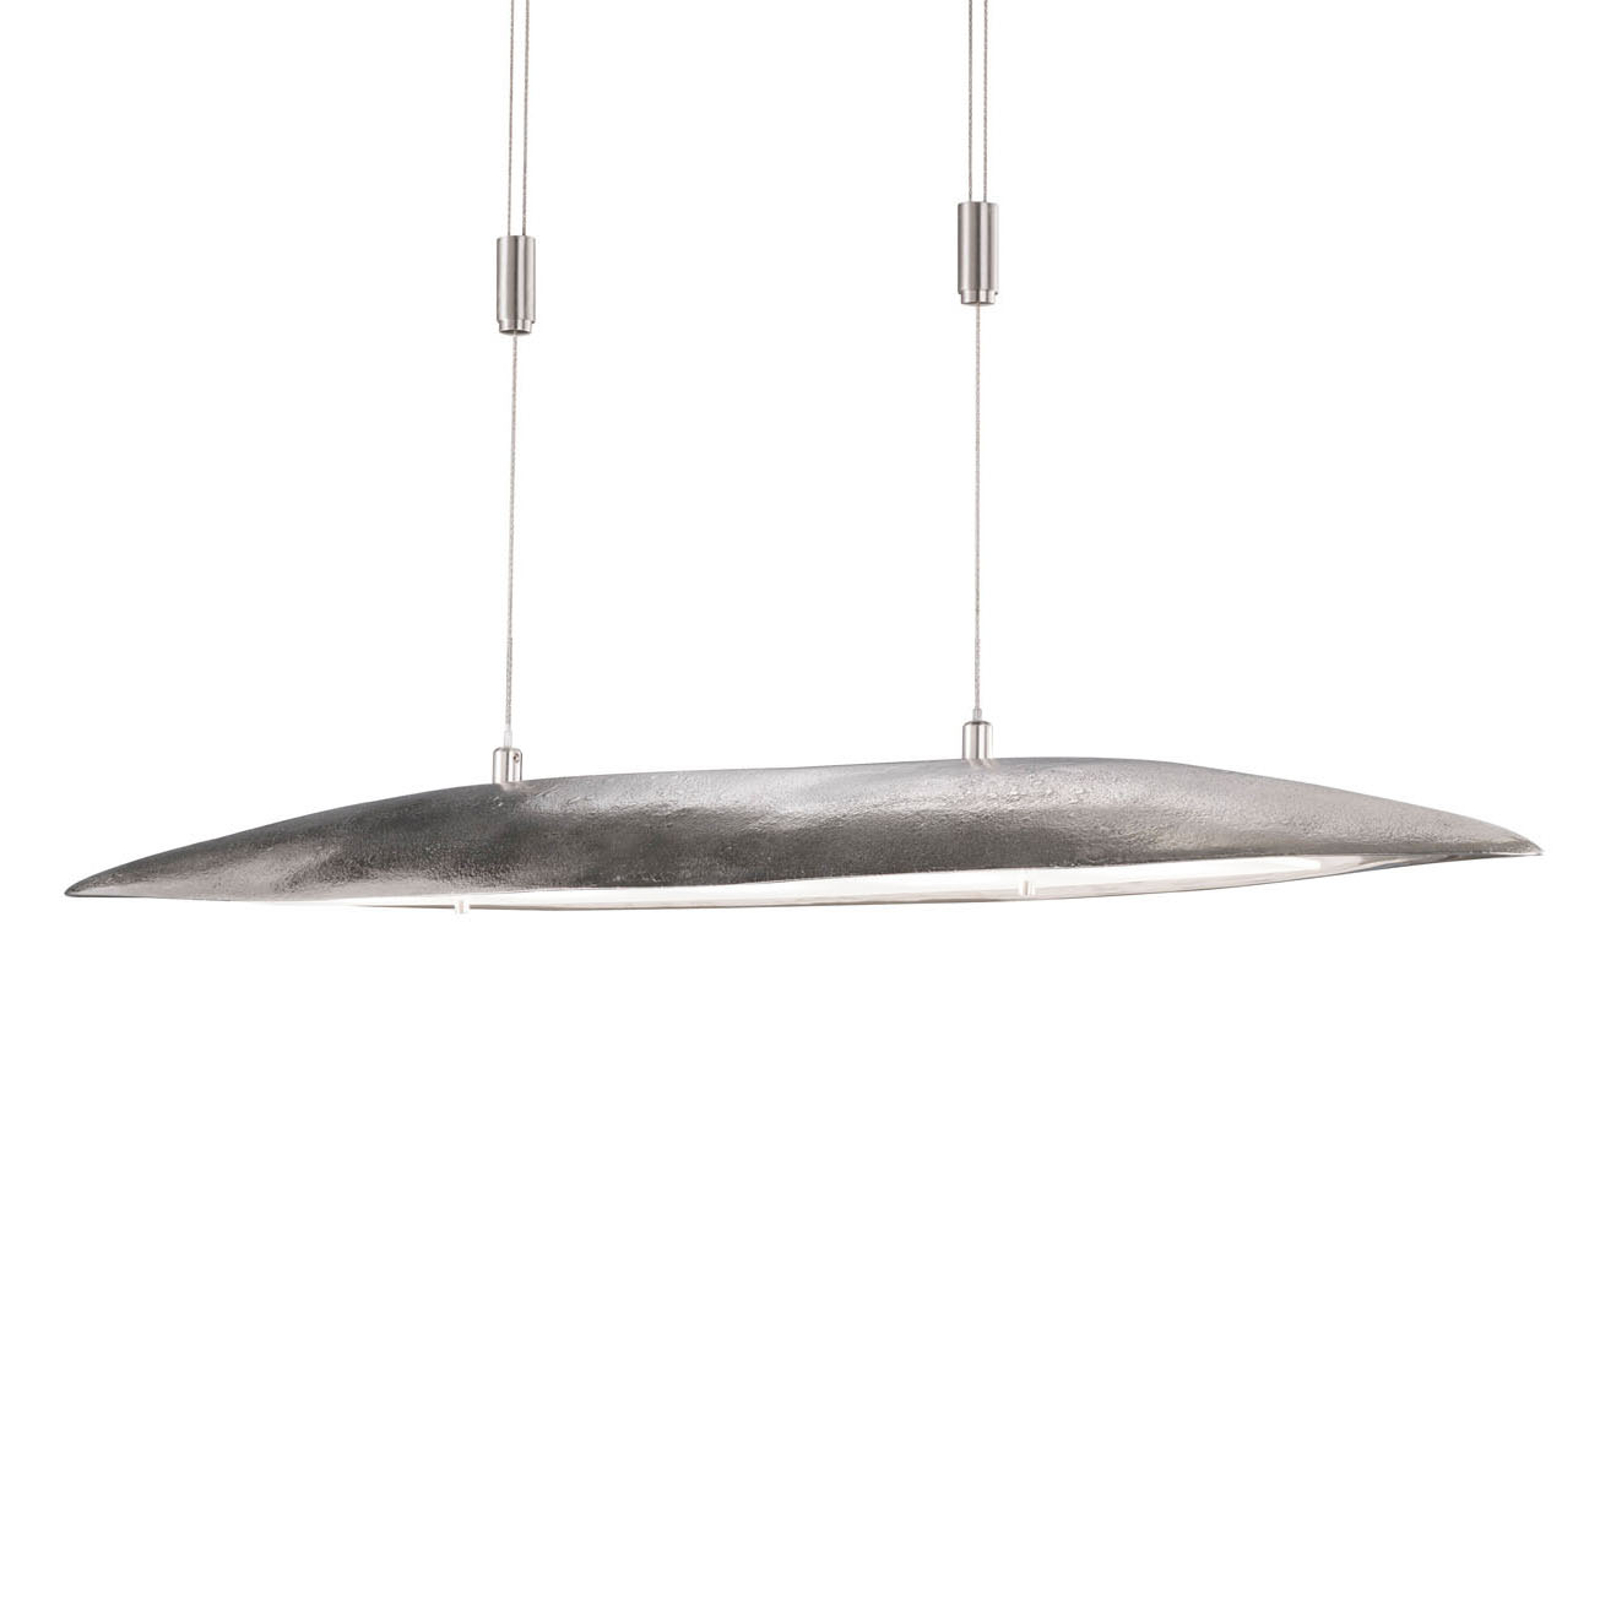 Suspension LED Colmar, longueur 98 cm, nickel